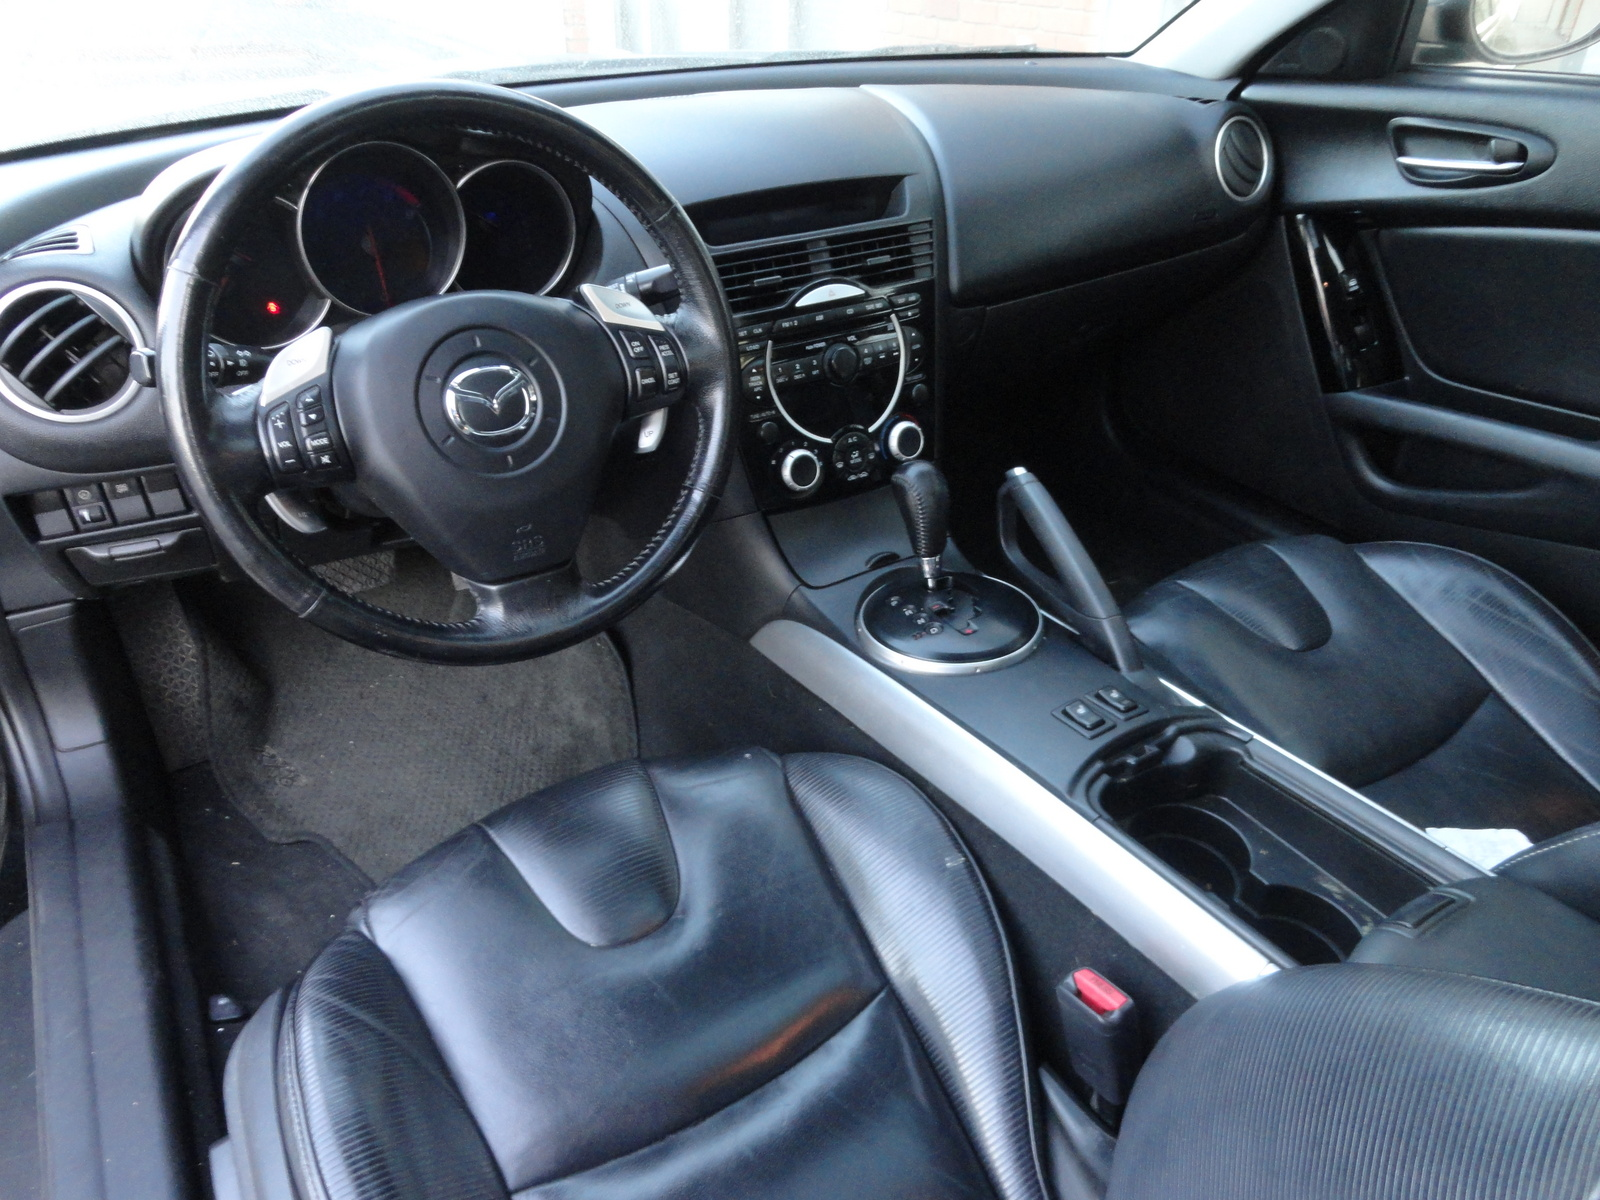 pin mazda rx8 interior feed rss2 strowallpaper site on pinterest. Black Bedroom Furniture Sets. Home Design Ideas